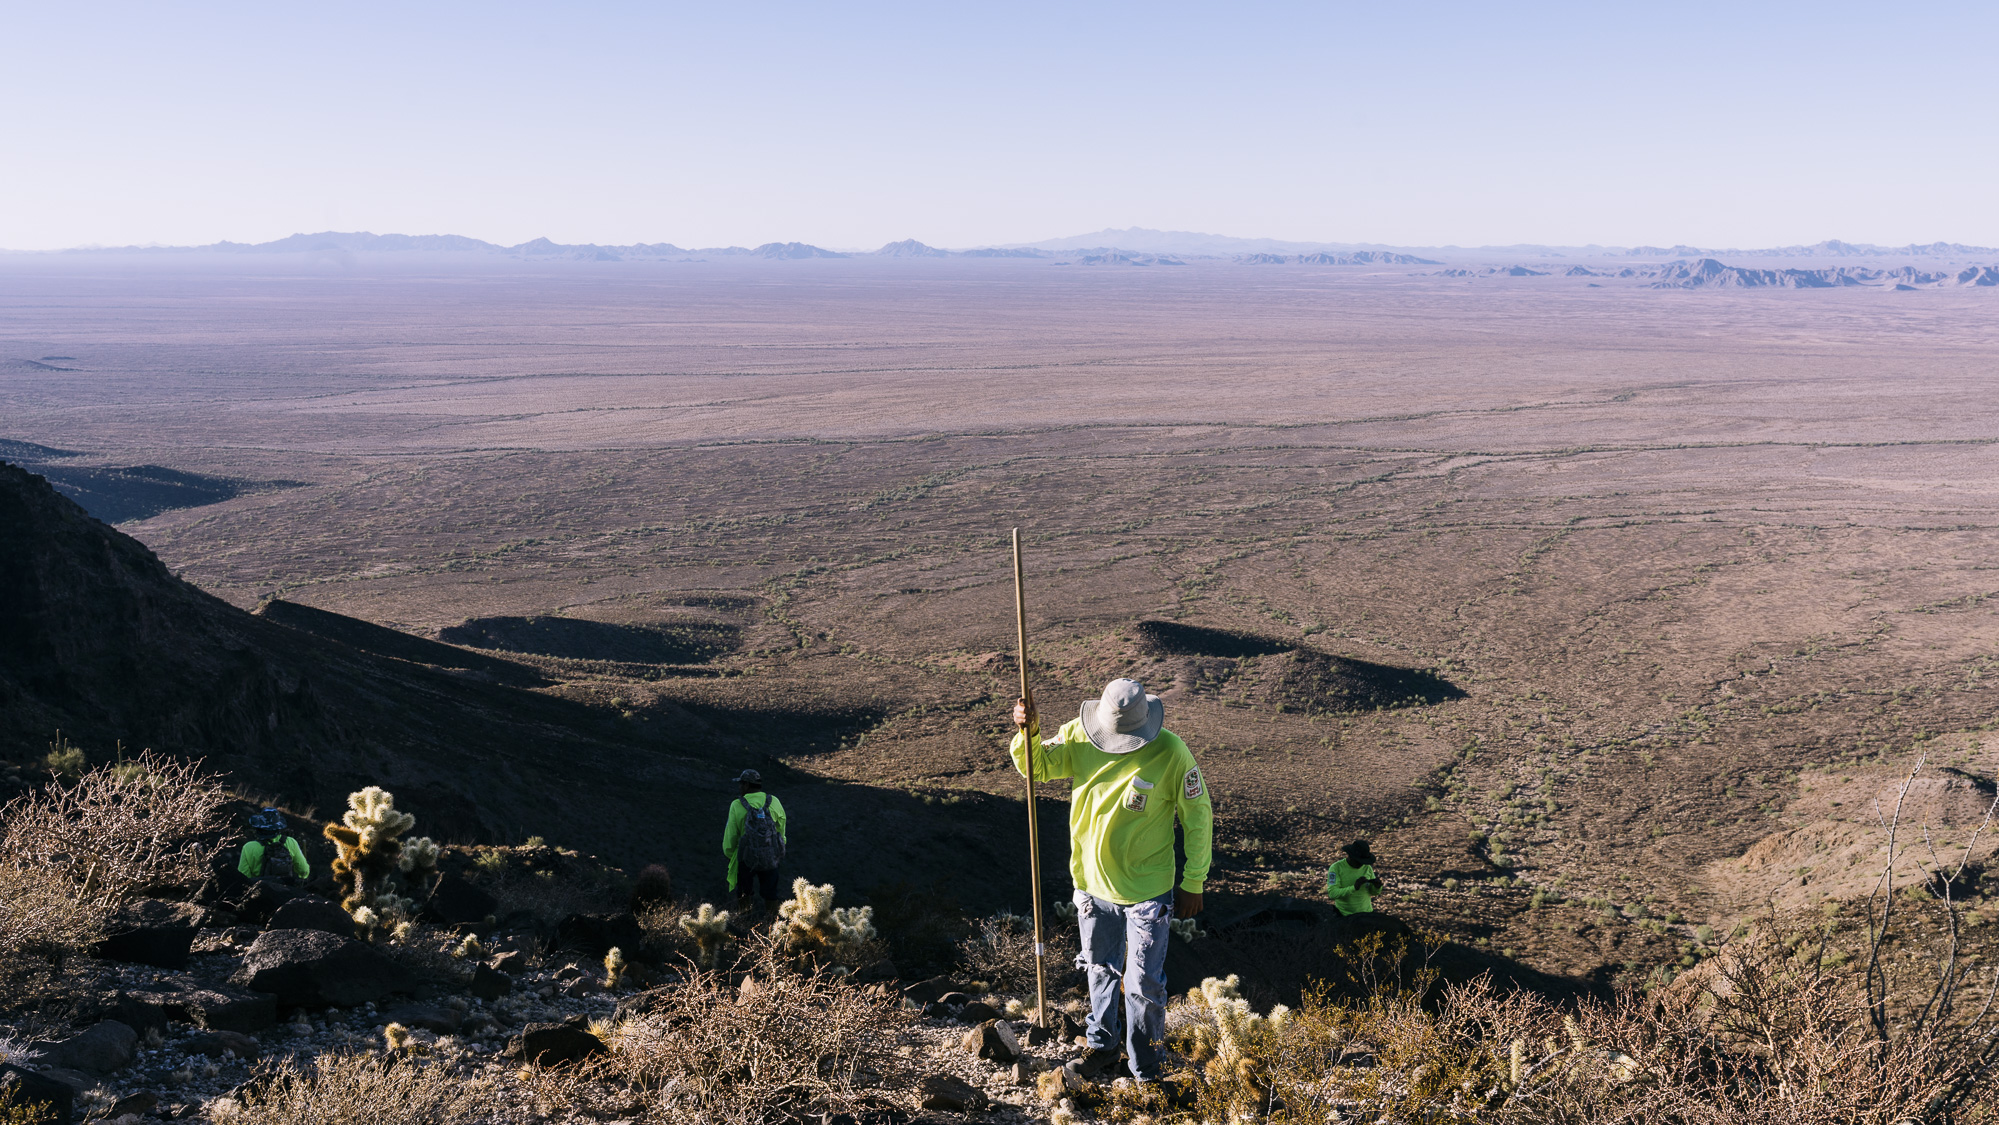 IMAGE CAPTION:  Volunteers from Aguilas Del Desierto scour a mountain peak above the Barry M. Goldwater Air Force Range. Passage through the active firing range, where pilots practice air-to-ground bombing, rocket delivery, and strafing, is the final gauntlet for migrants before reaching Interstate 8, where their guides will have arranged a vehicle pickup.